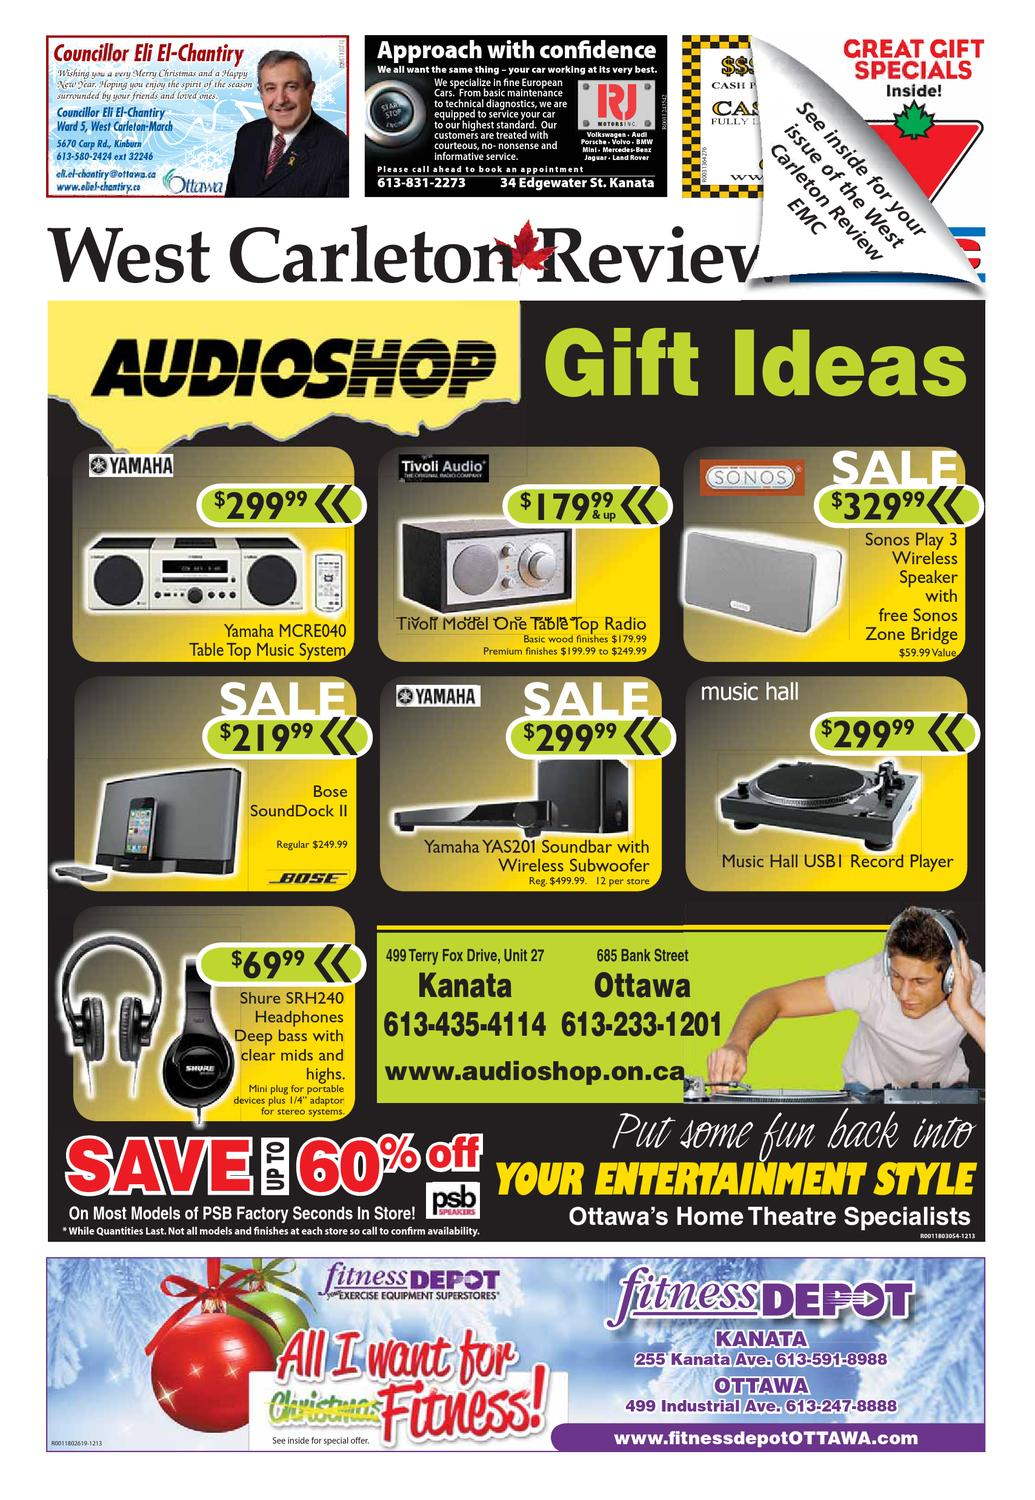 West Carleton Review EMC by Metroland East - West Carleton Review - issuu